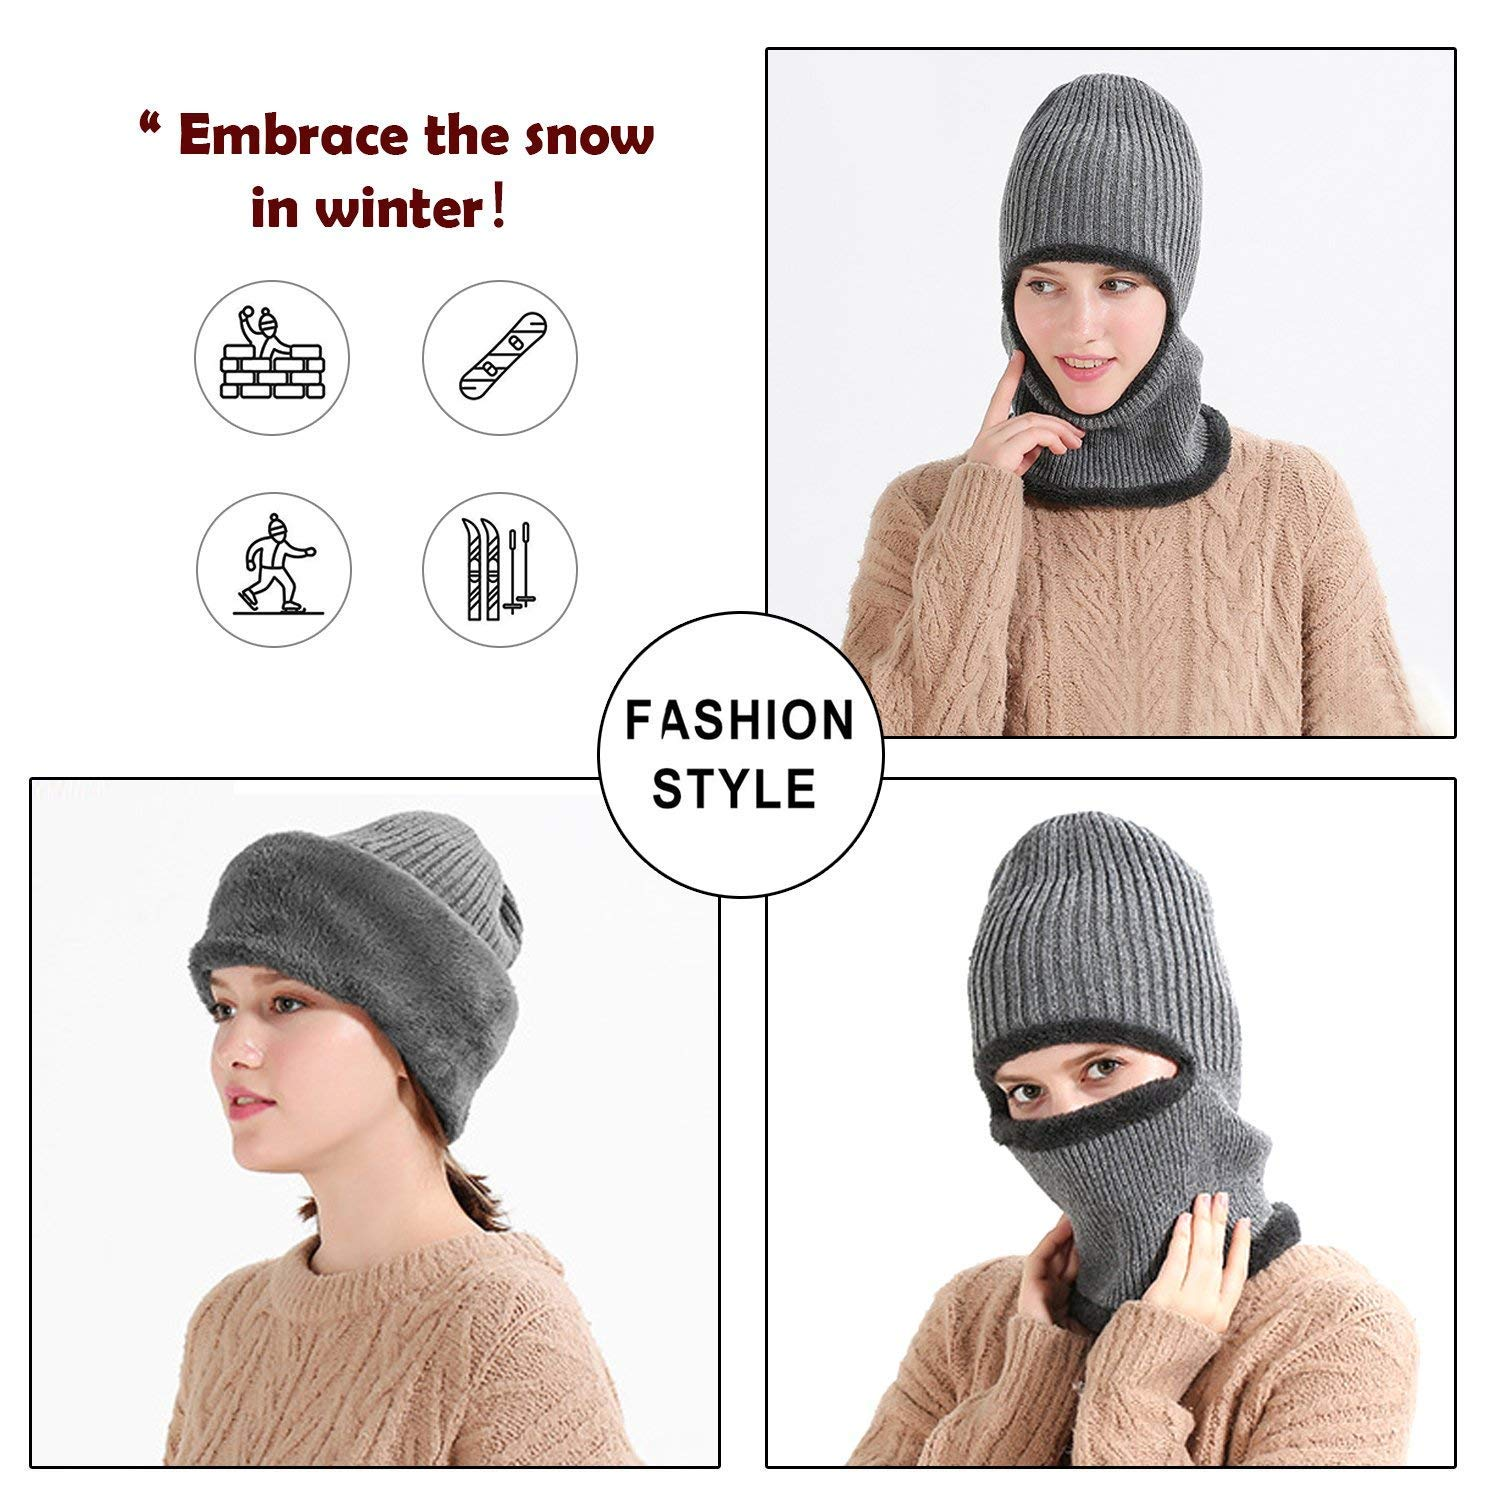 MOCOFO Warm Winter Hats, 3-in-1 Knit Beanie with Flexible Neck Guard,Unisex Face Mask Riding Hat for Winter Outdoor Sports Cycling Motorcycle Ski Snowboard or Fishing